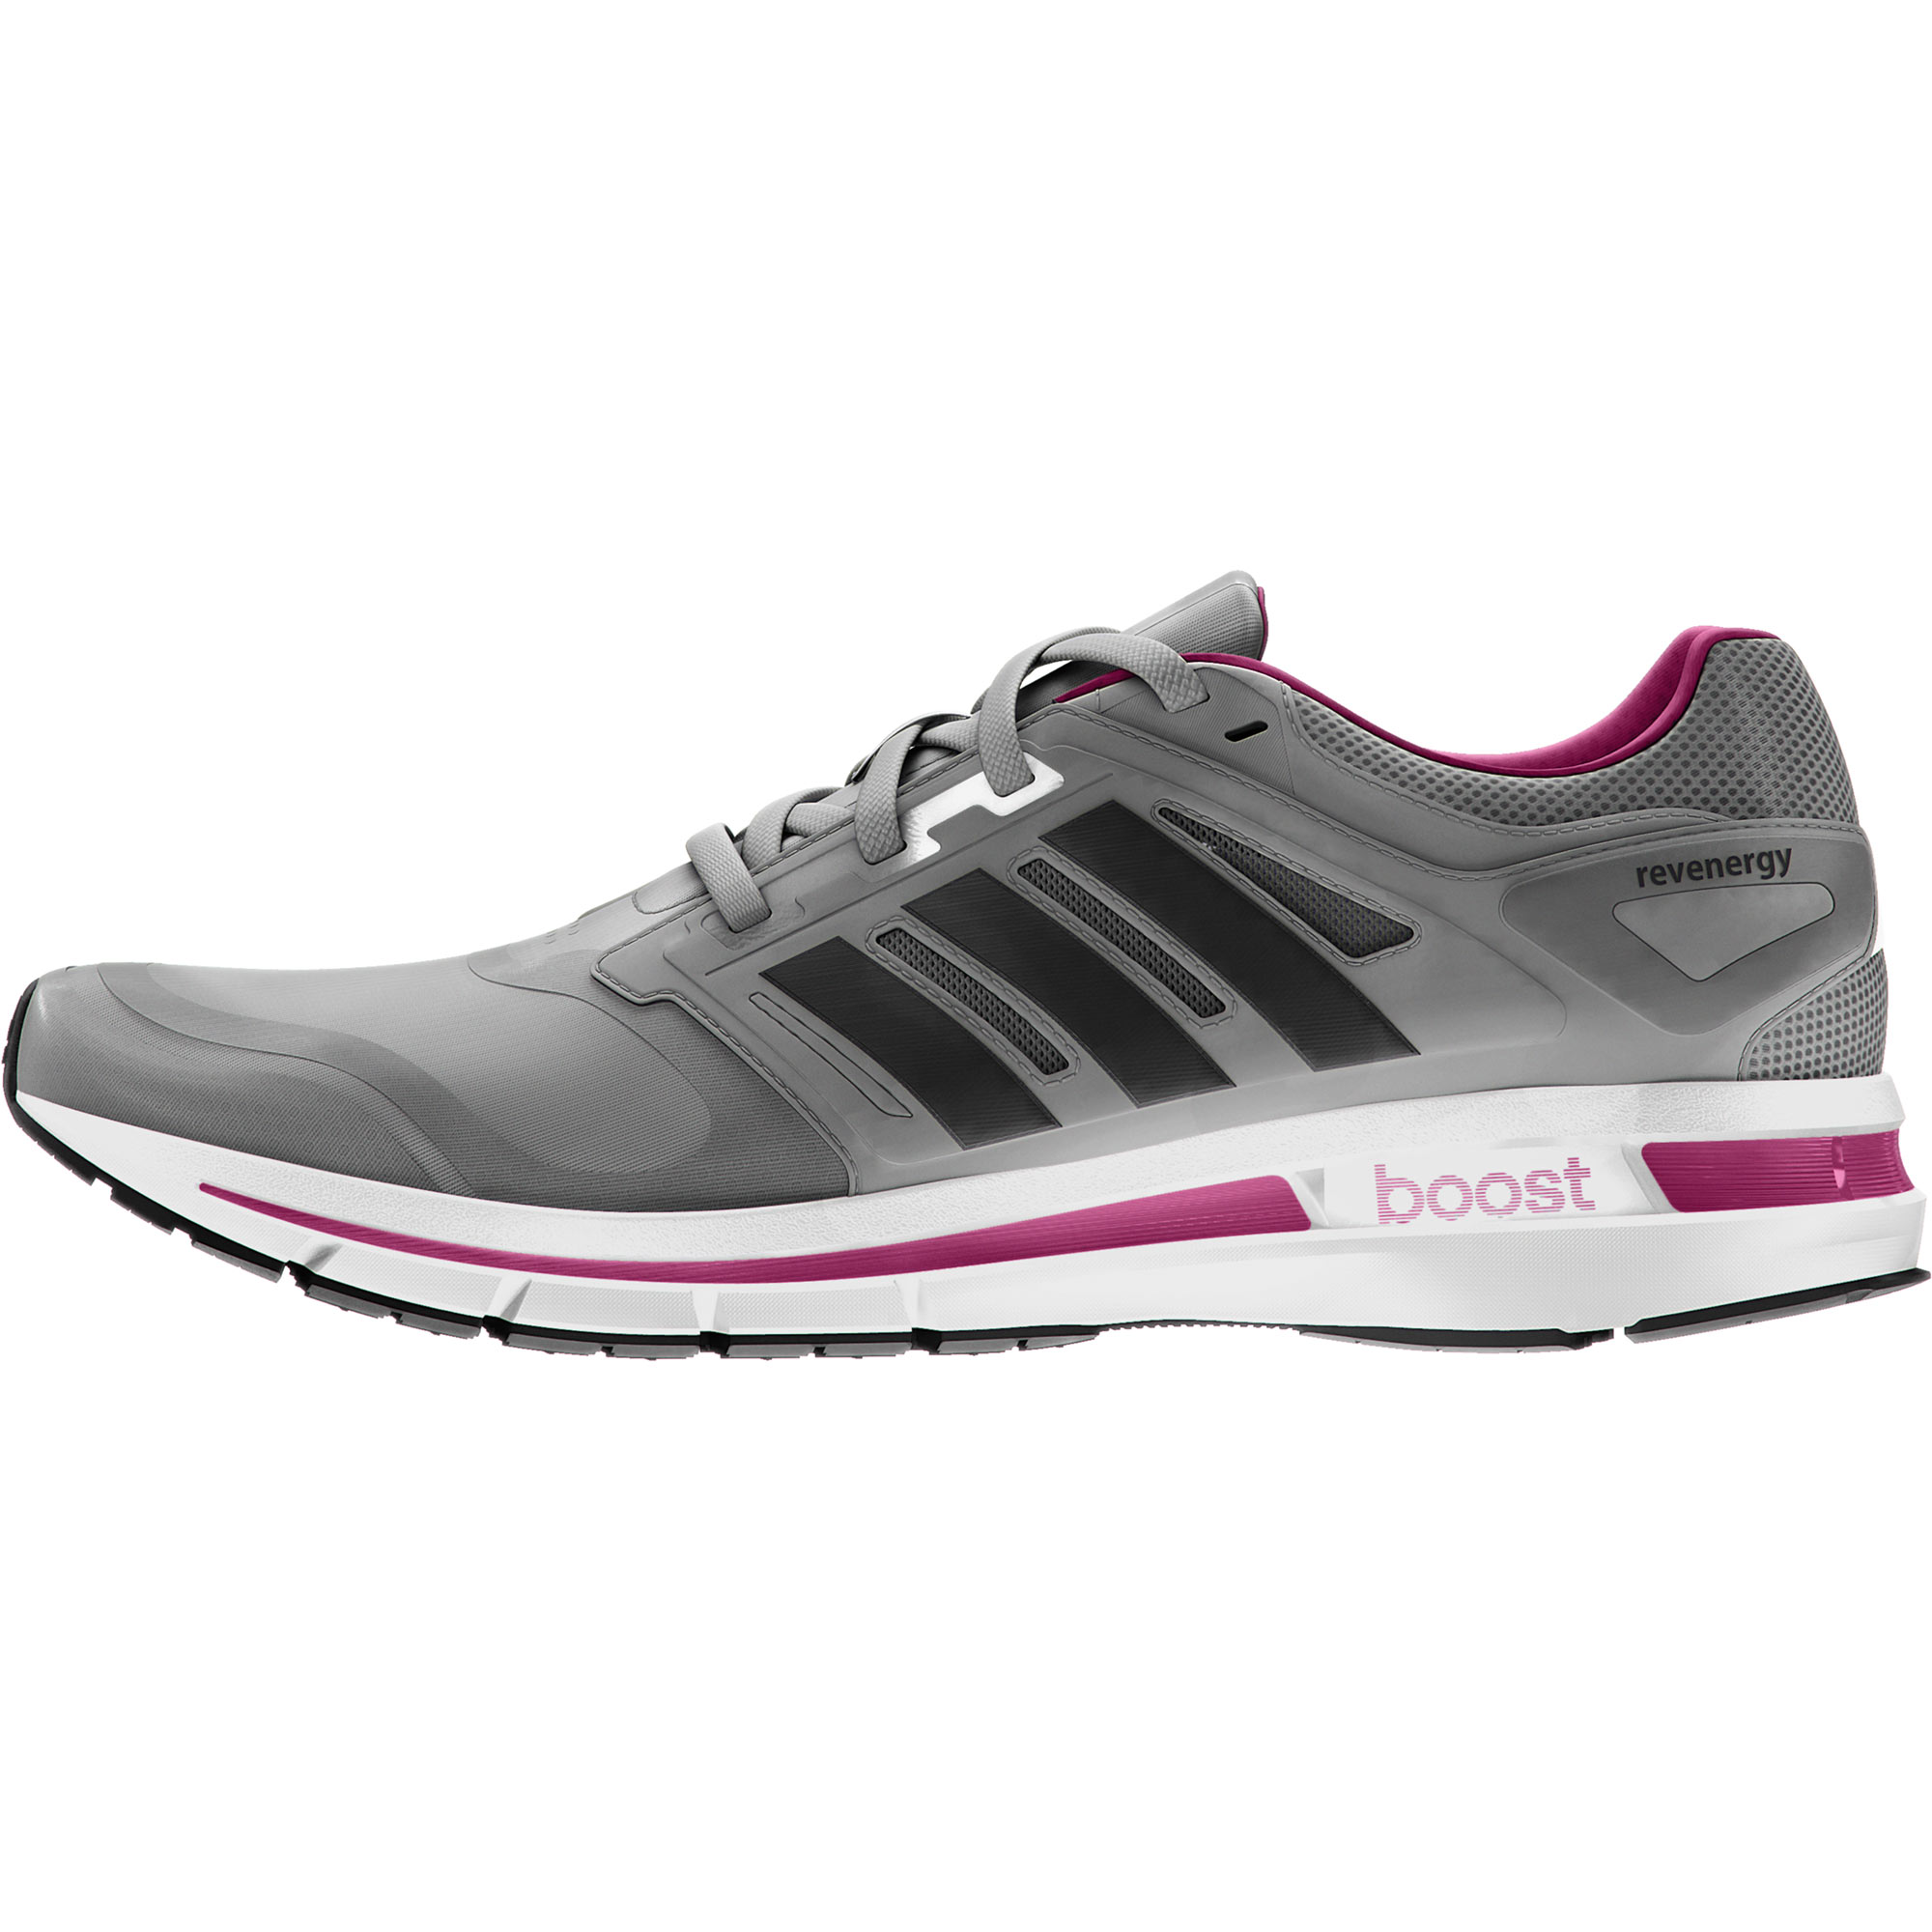 chaussures de running femme adidas running revenergy boost. Black Bedroom Furniture Sets. Home Design Ideas